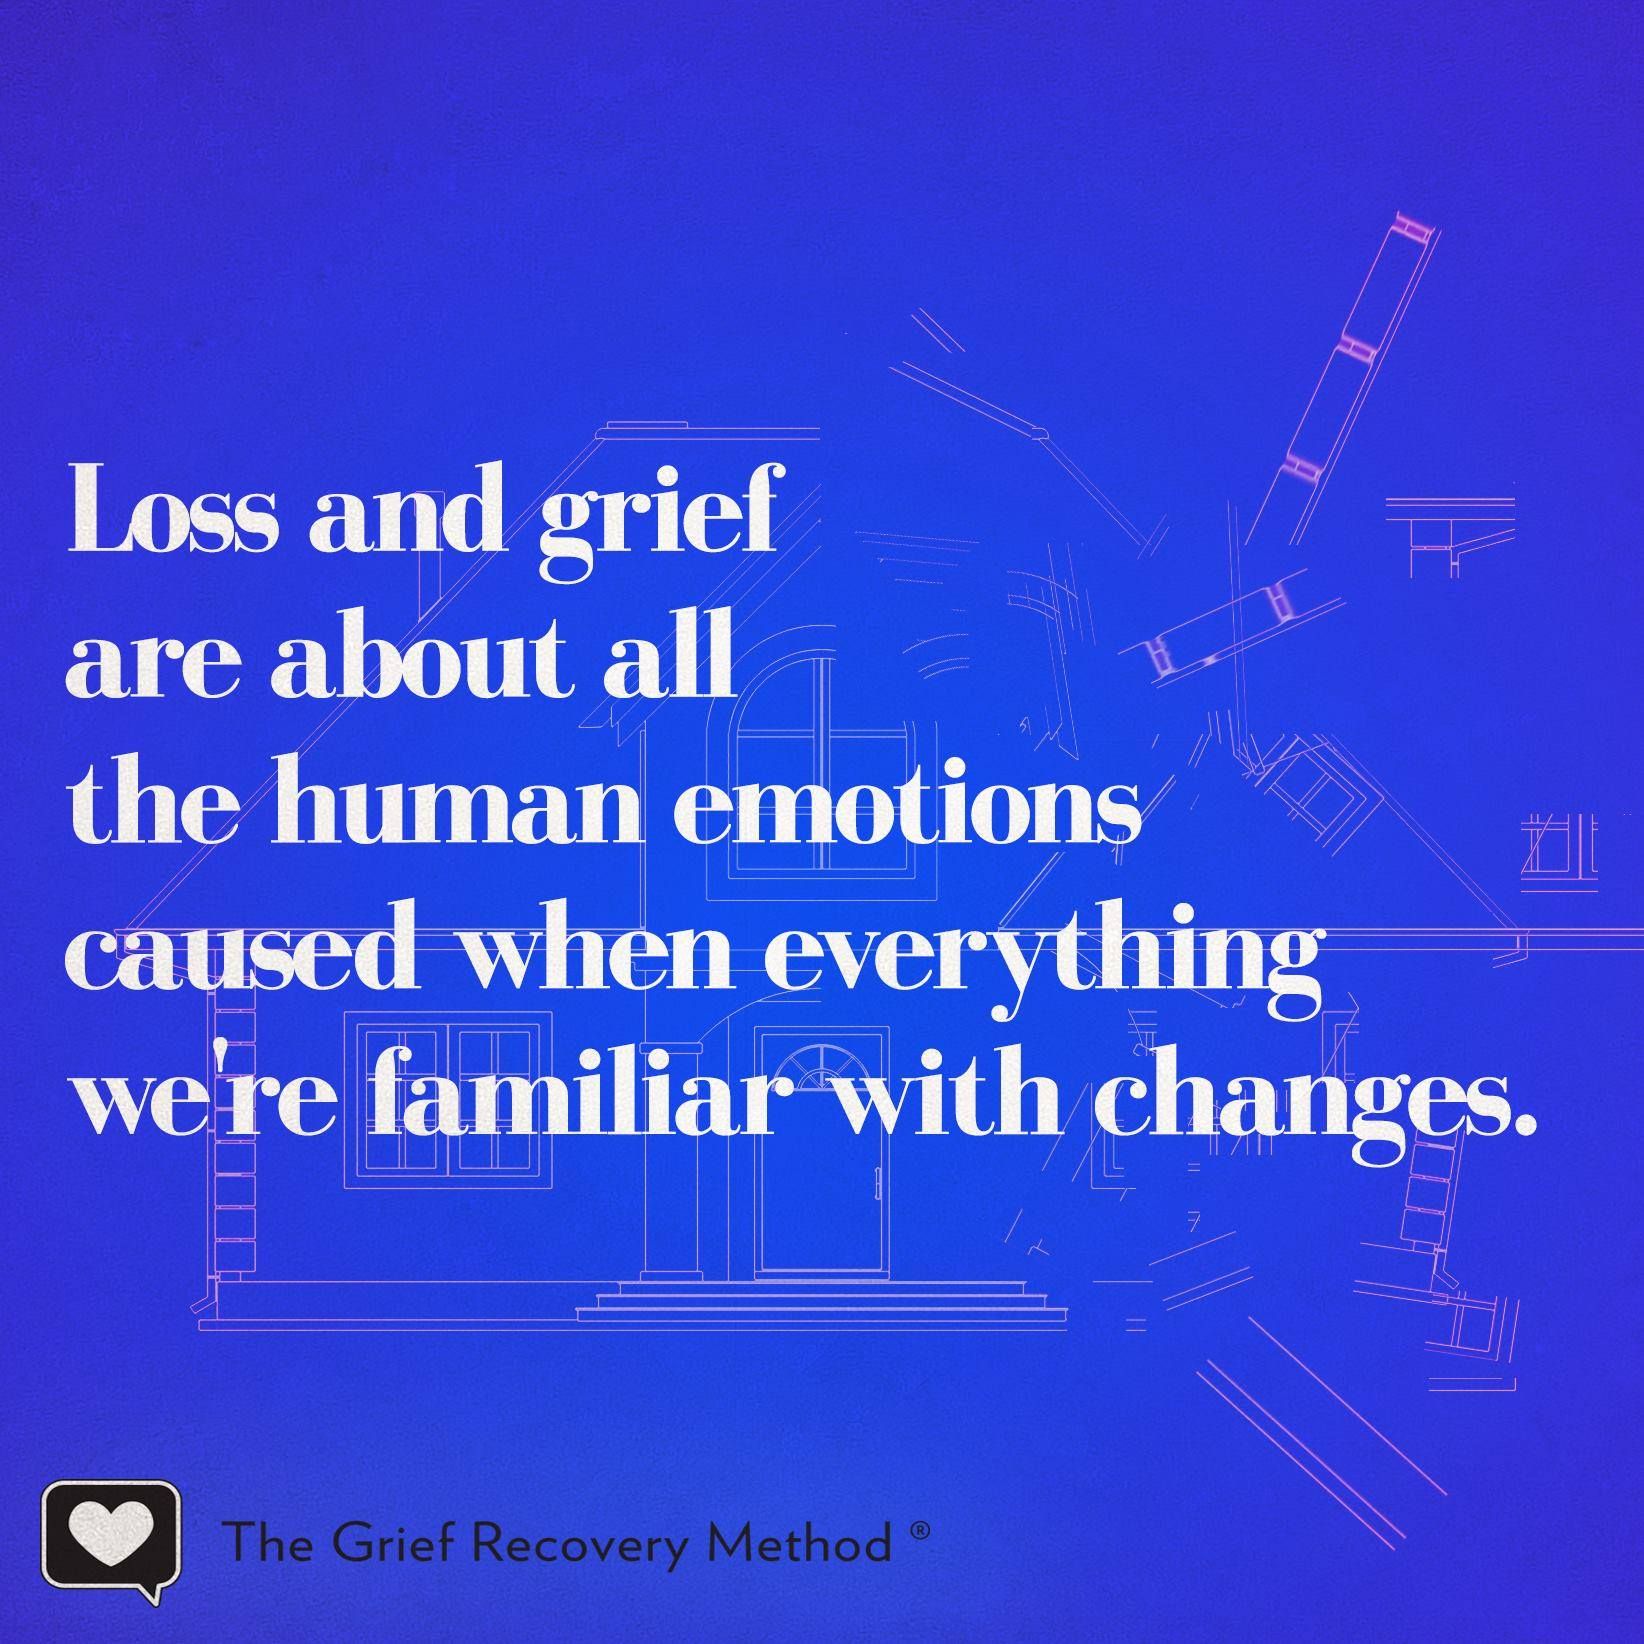 grief loss emotions everything familiar changes